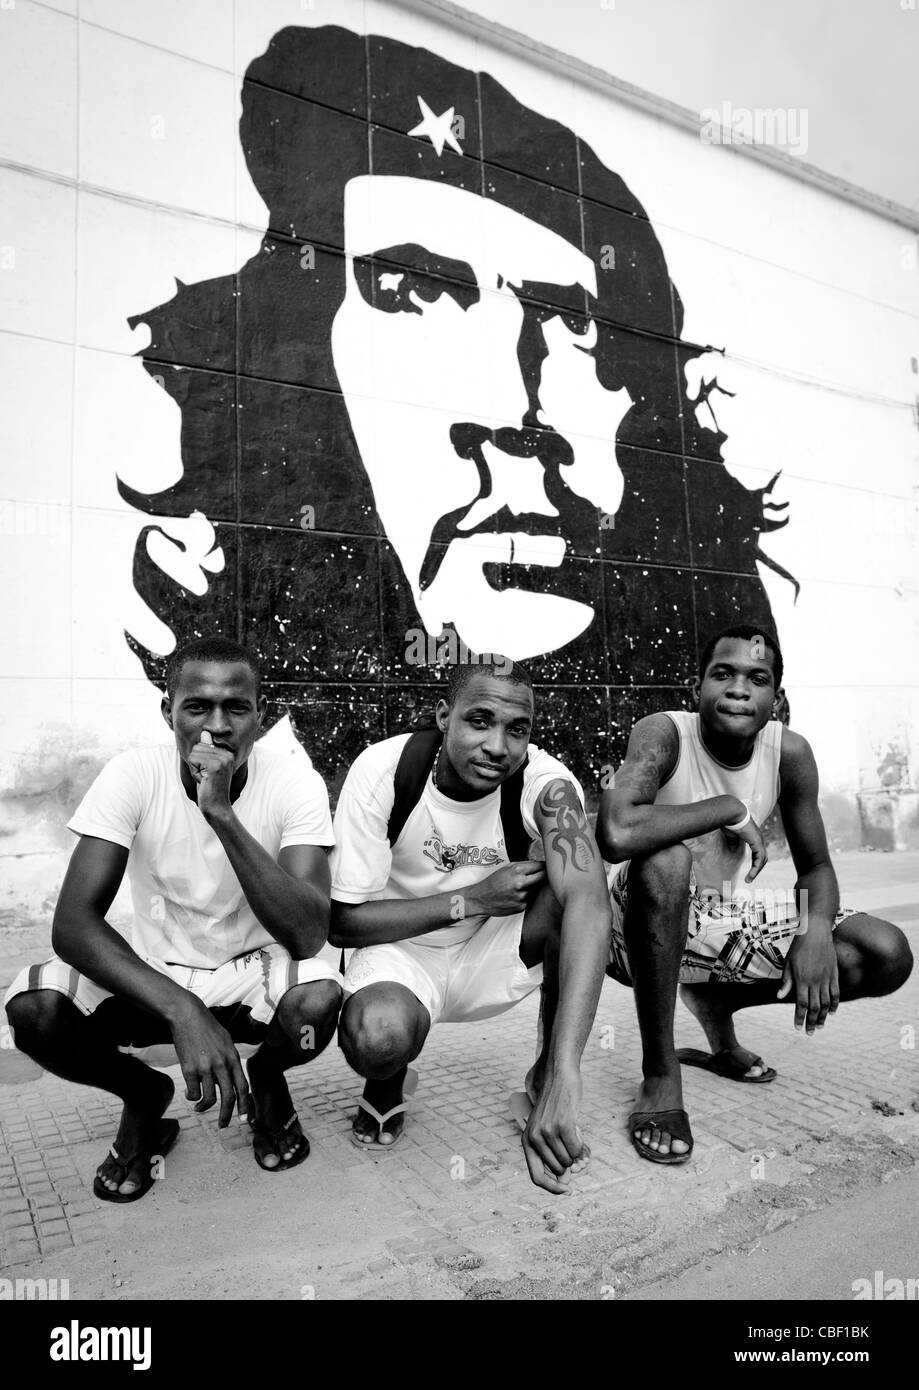 Men Crouched In Front Of A Che Guevara Wall Painting, Sumbe, Angola Stock Photo